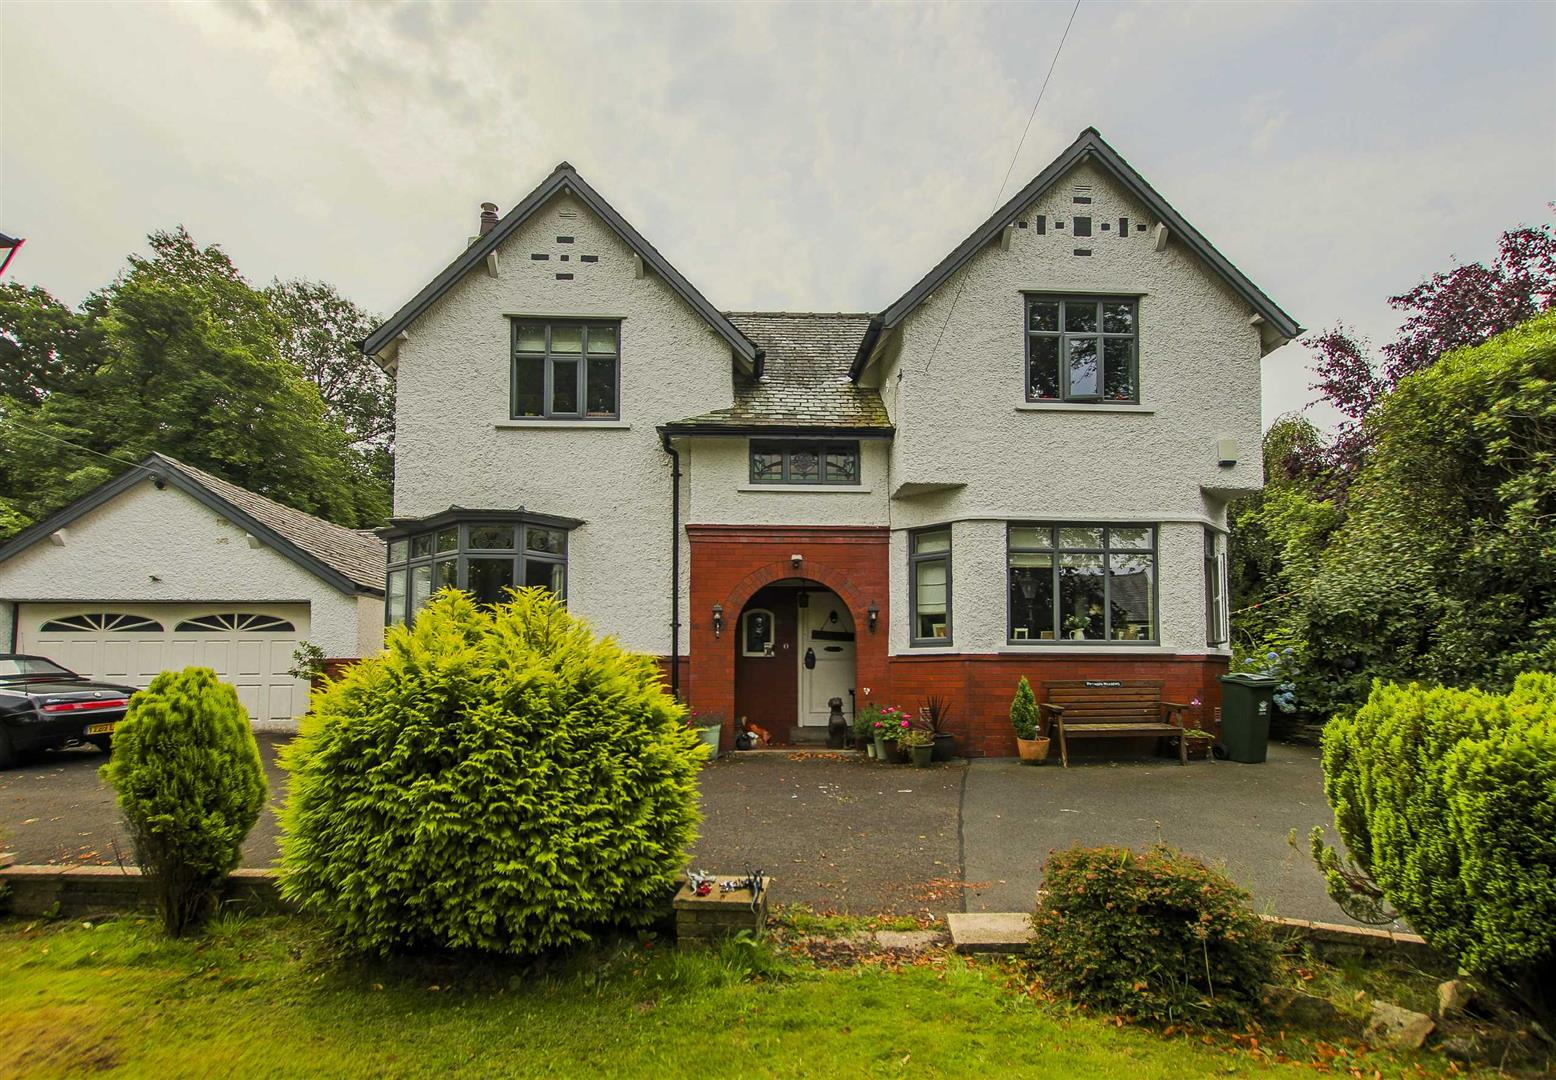 4 Bedroom Detached House For Sale - Image 17